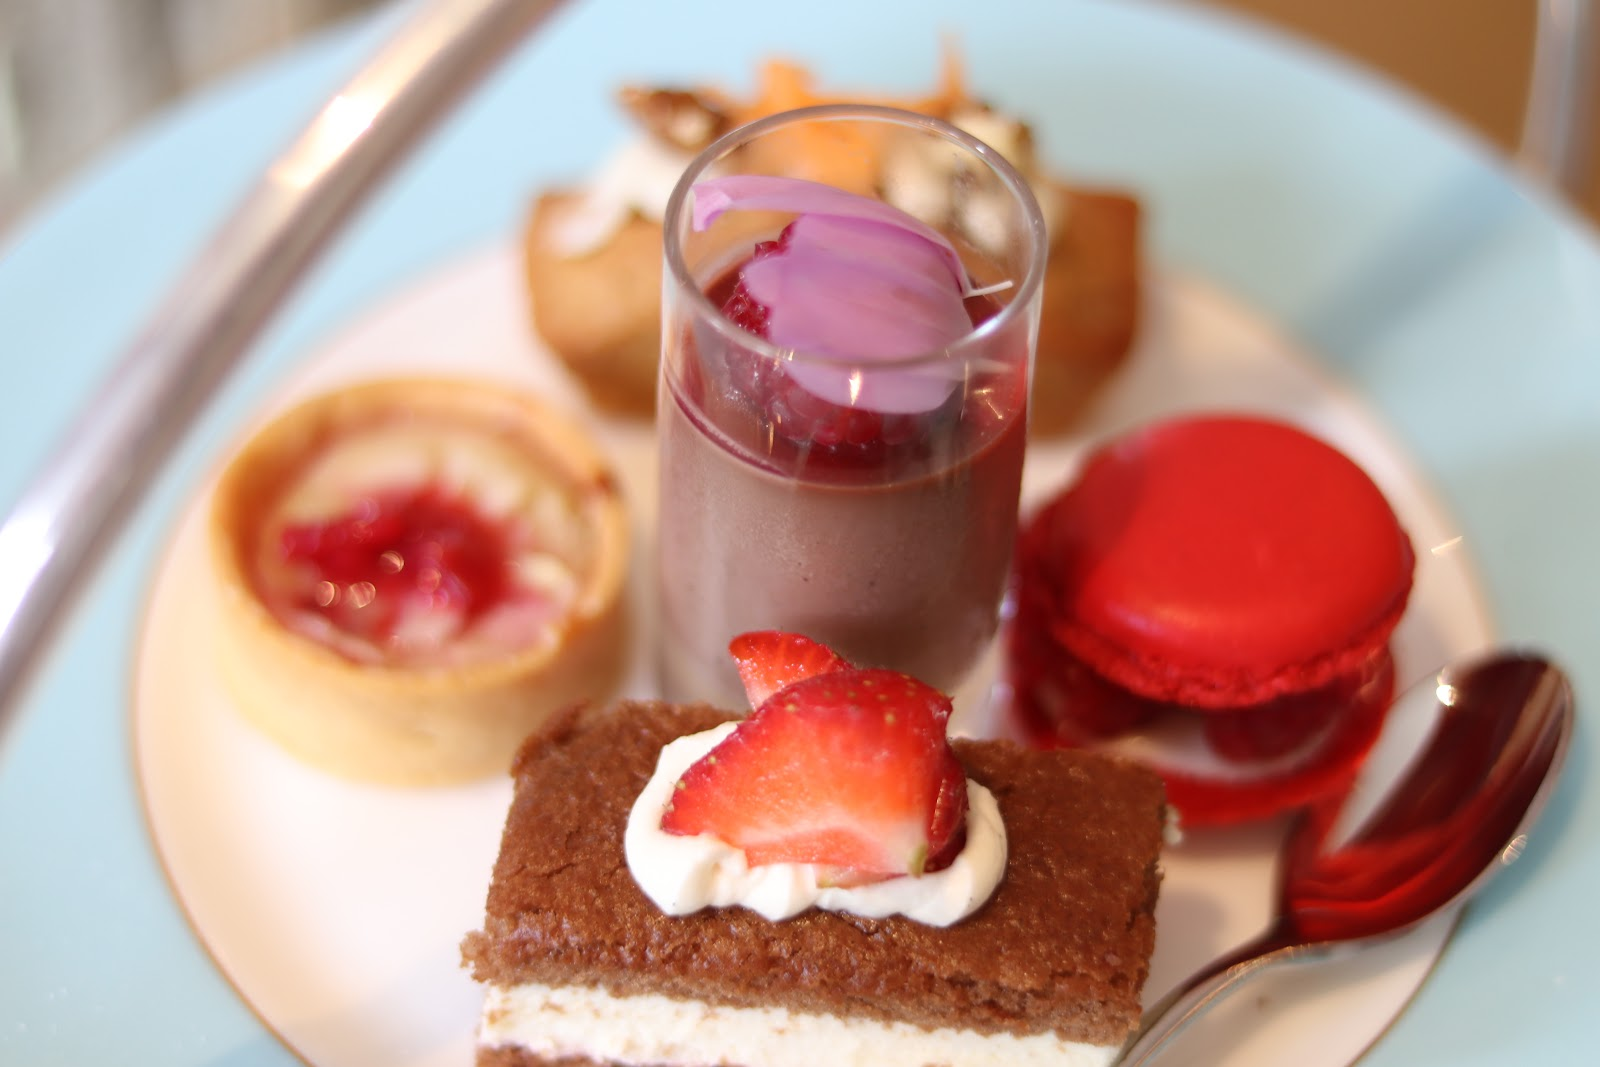 Cakes, Afternoon Tea, The Town House, The Kensington Hotel, Kensington, Chelsea, London